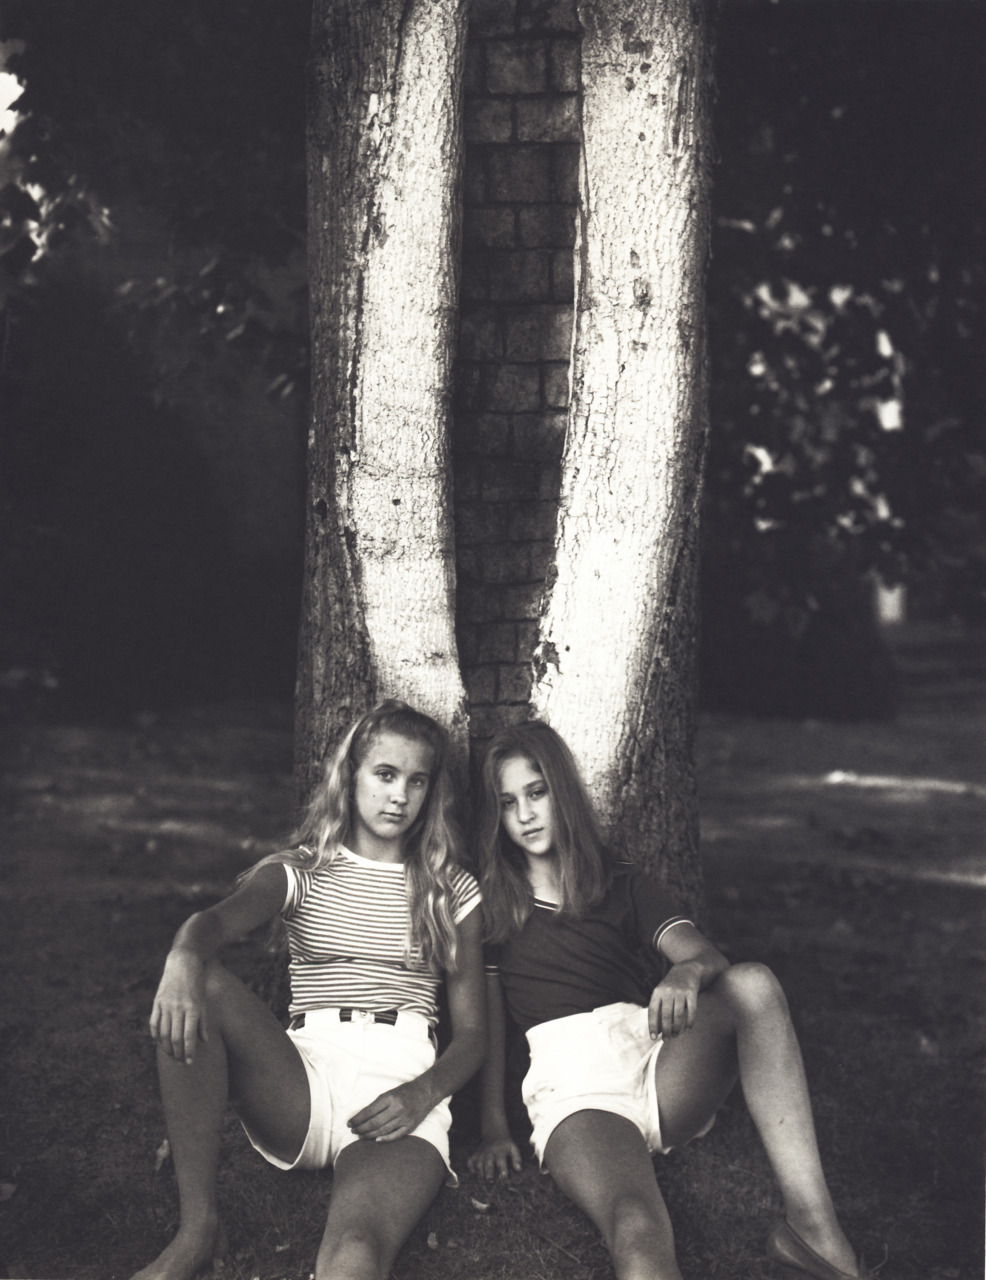 At Twelve: Portraits of Young Women by Sally Mann, 1983-1985